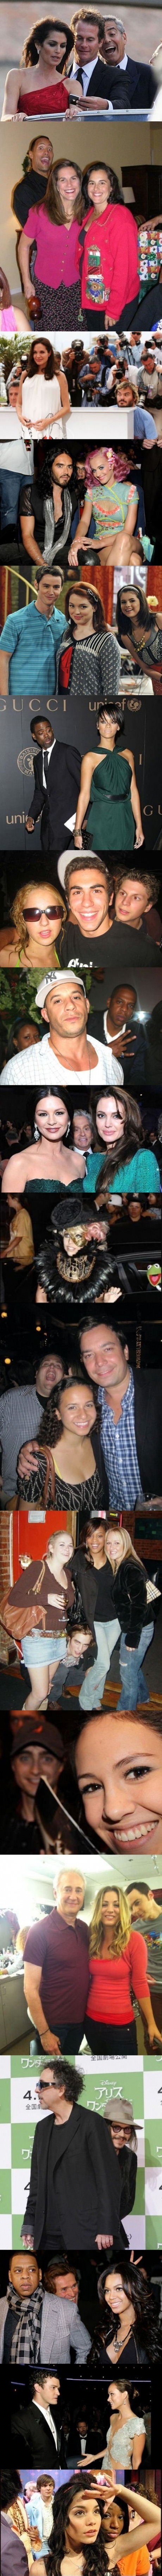 Photobombing Celebrities